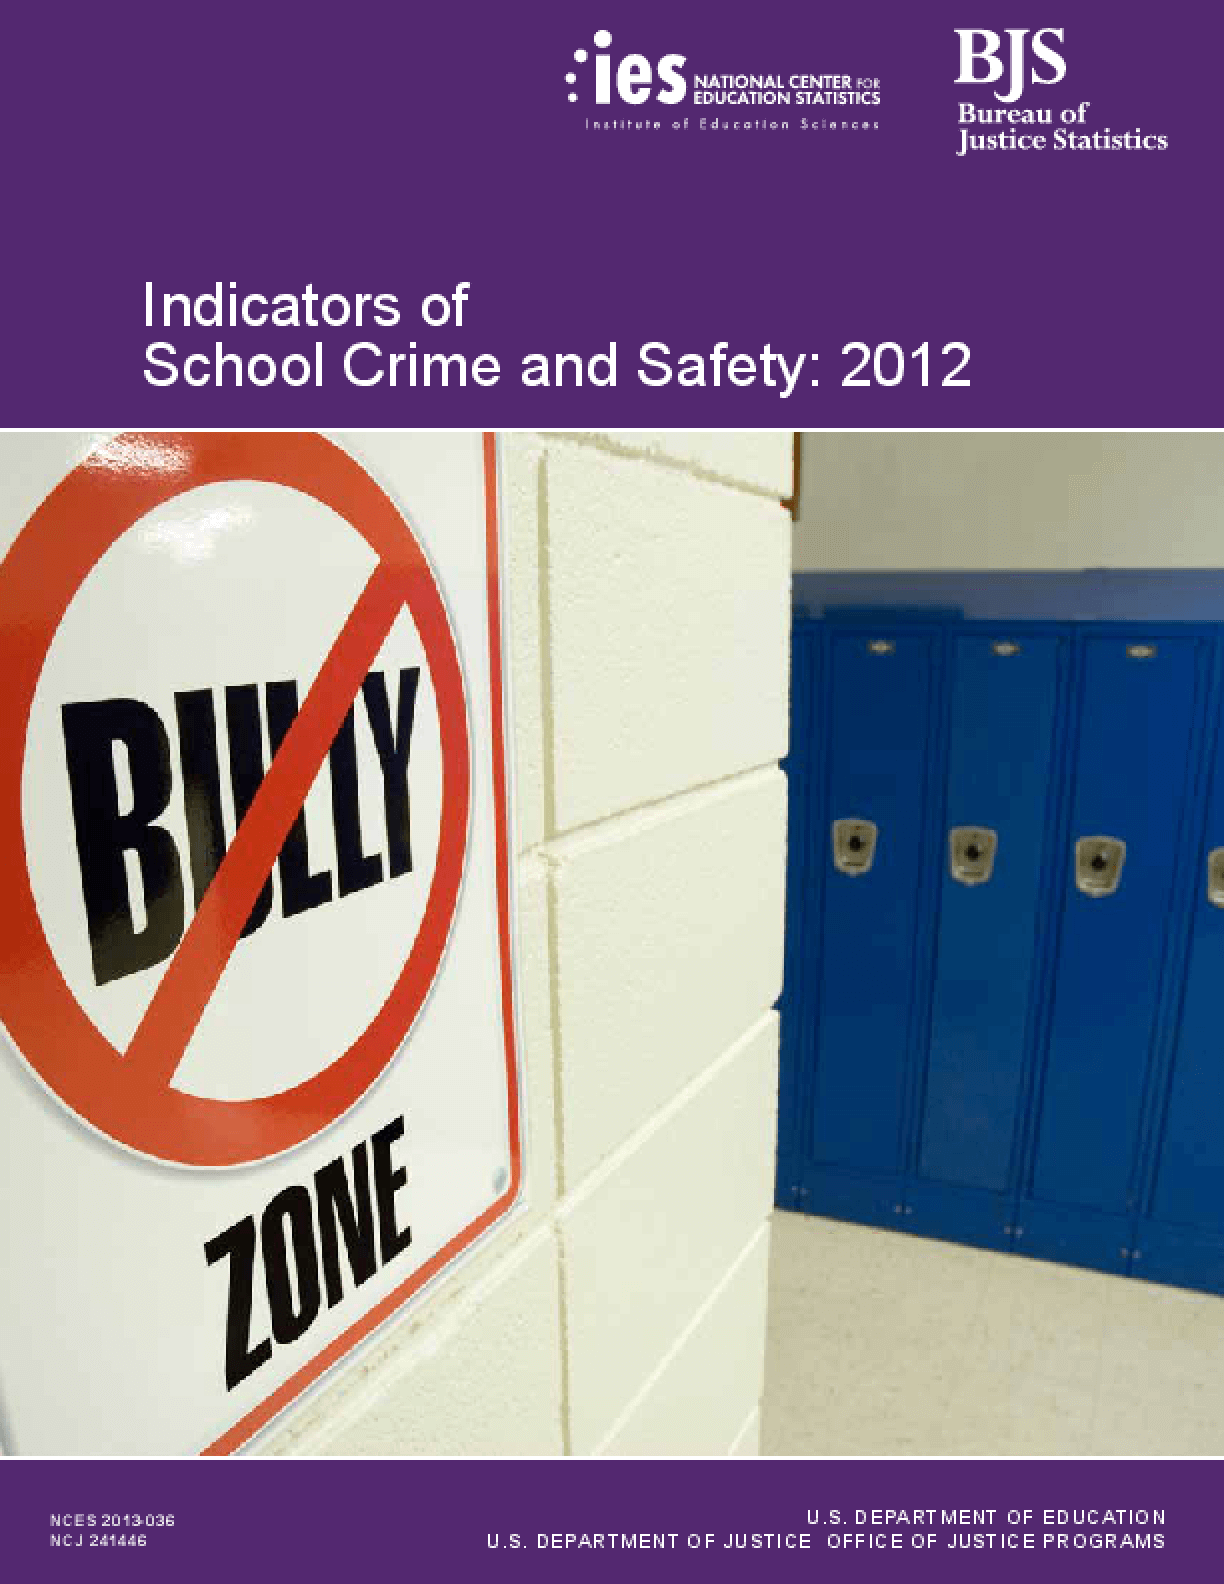 Indicators of School Crime and Safety: 2012